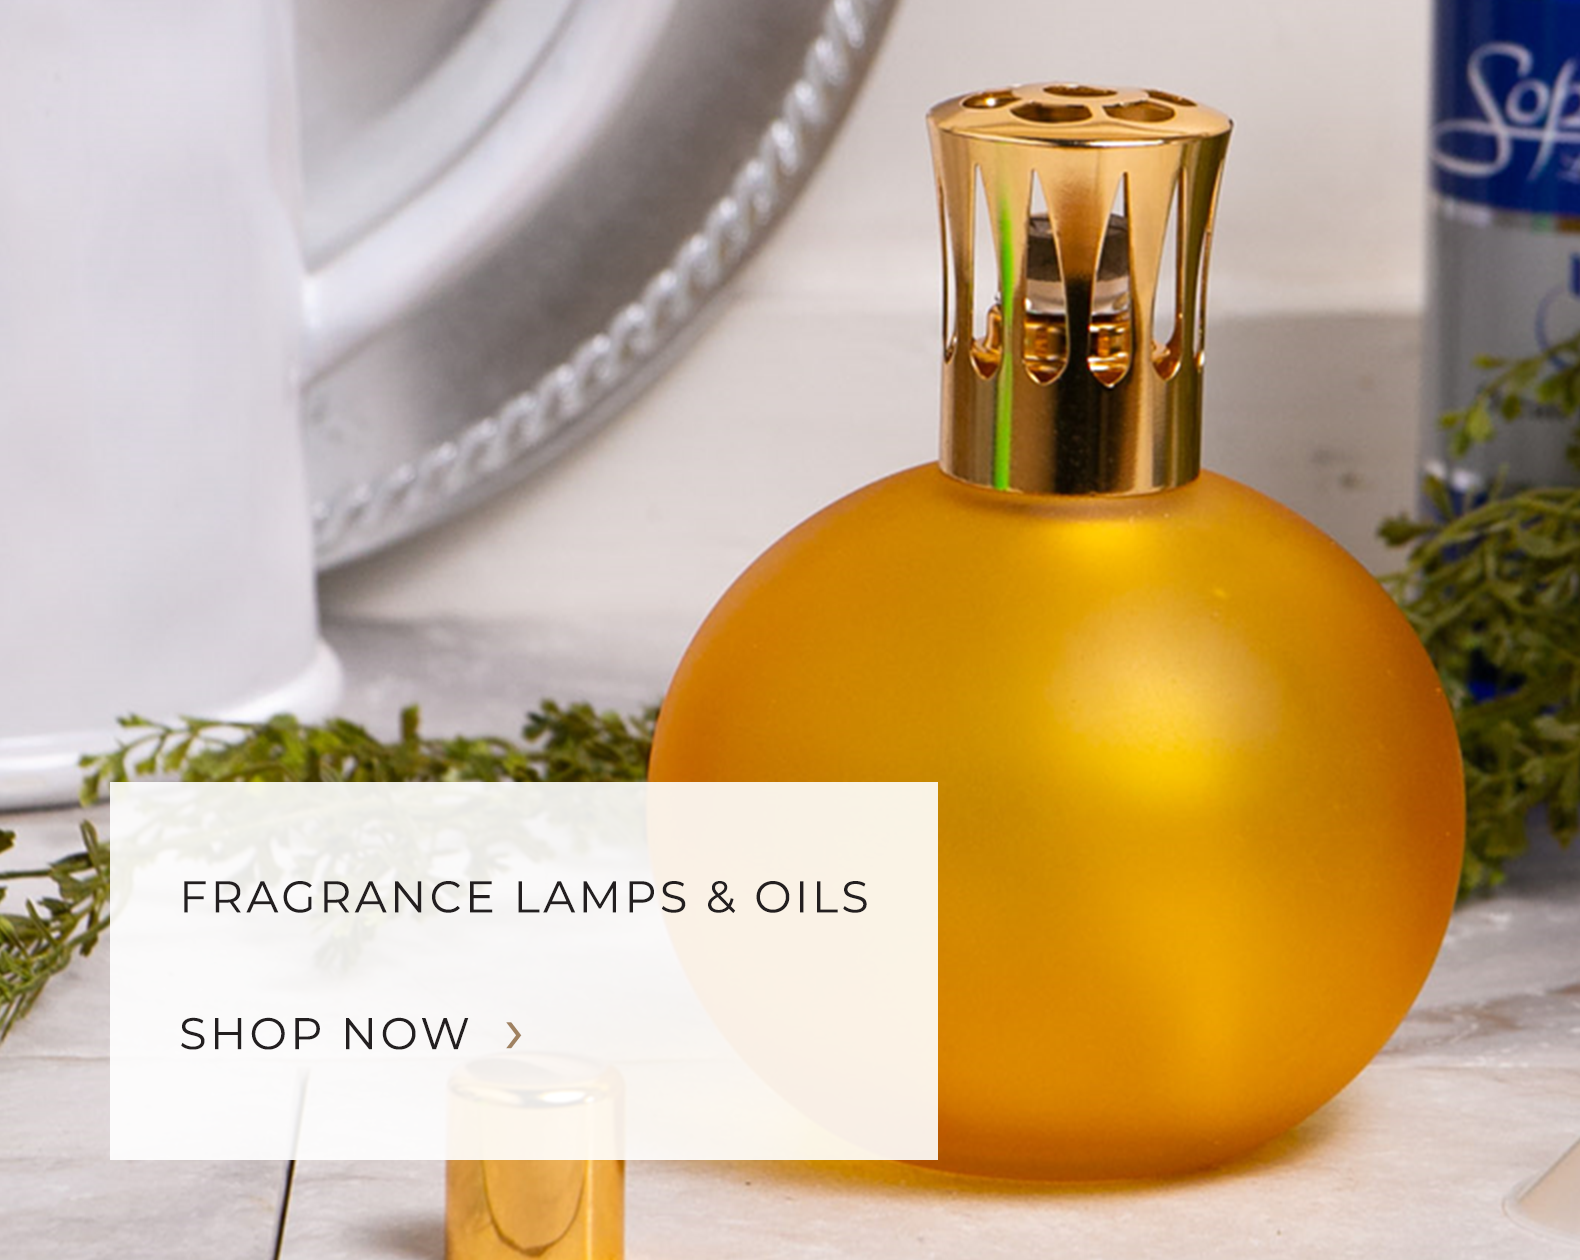 Fragrance lamps and oils